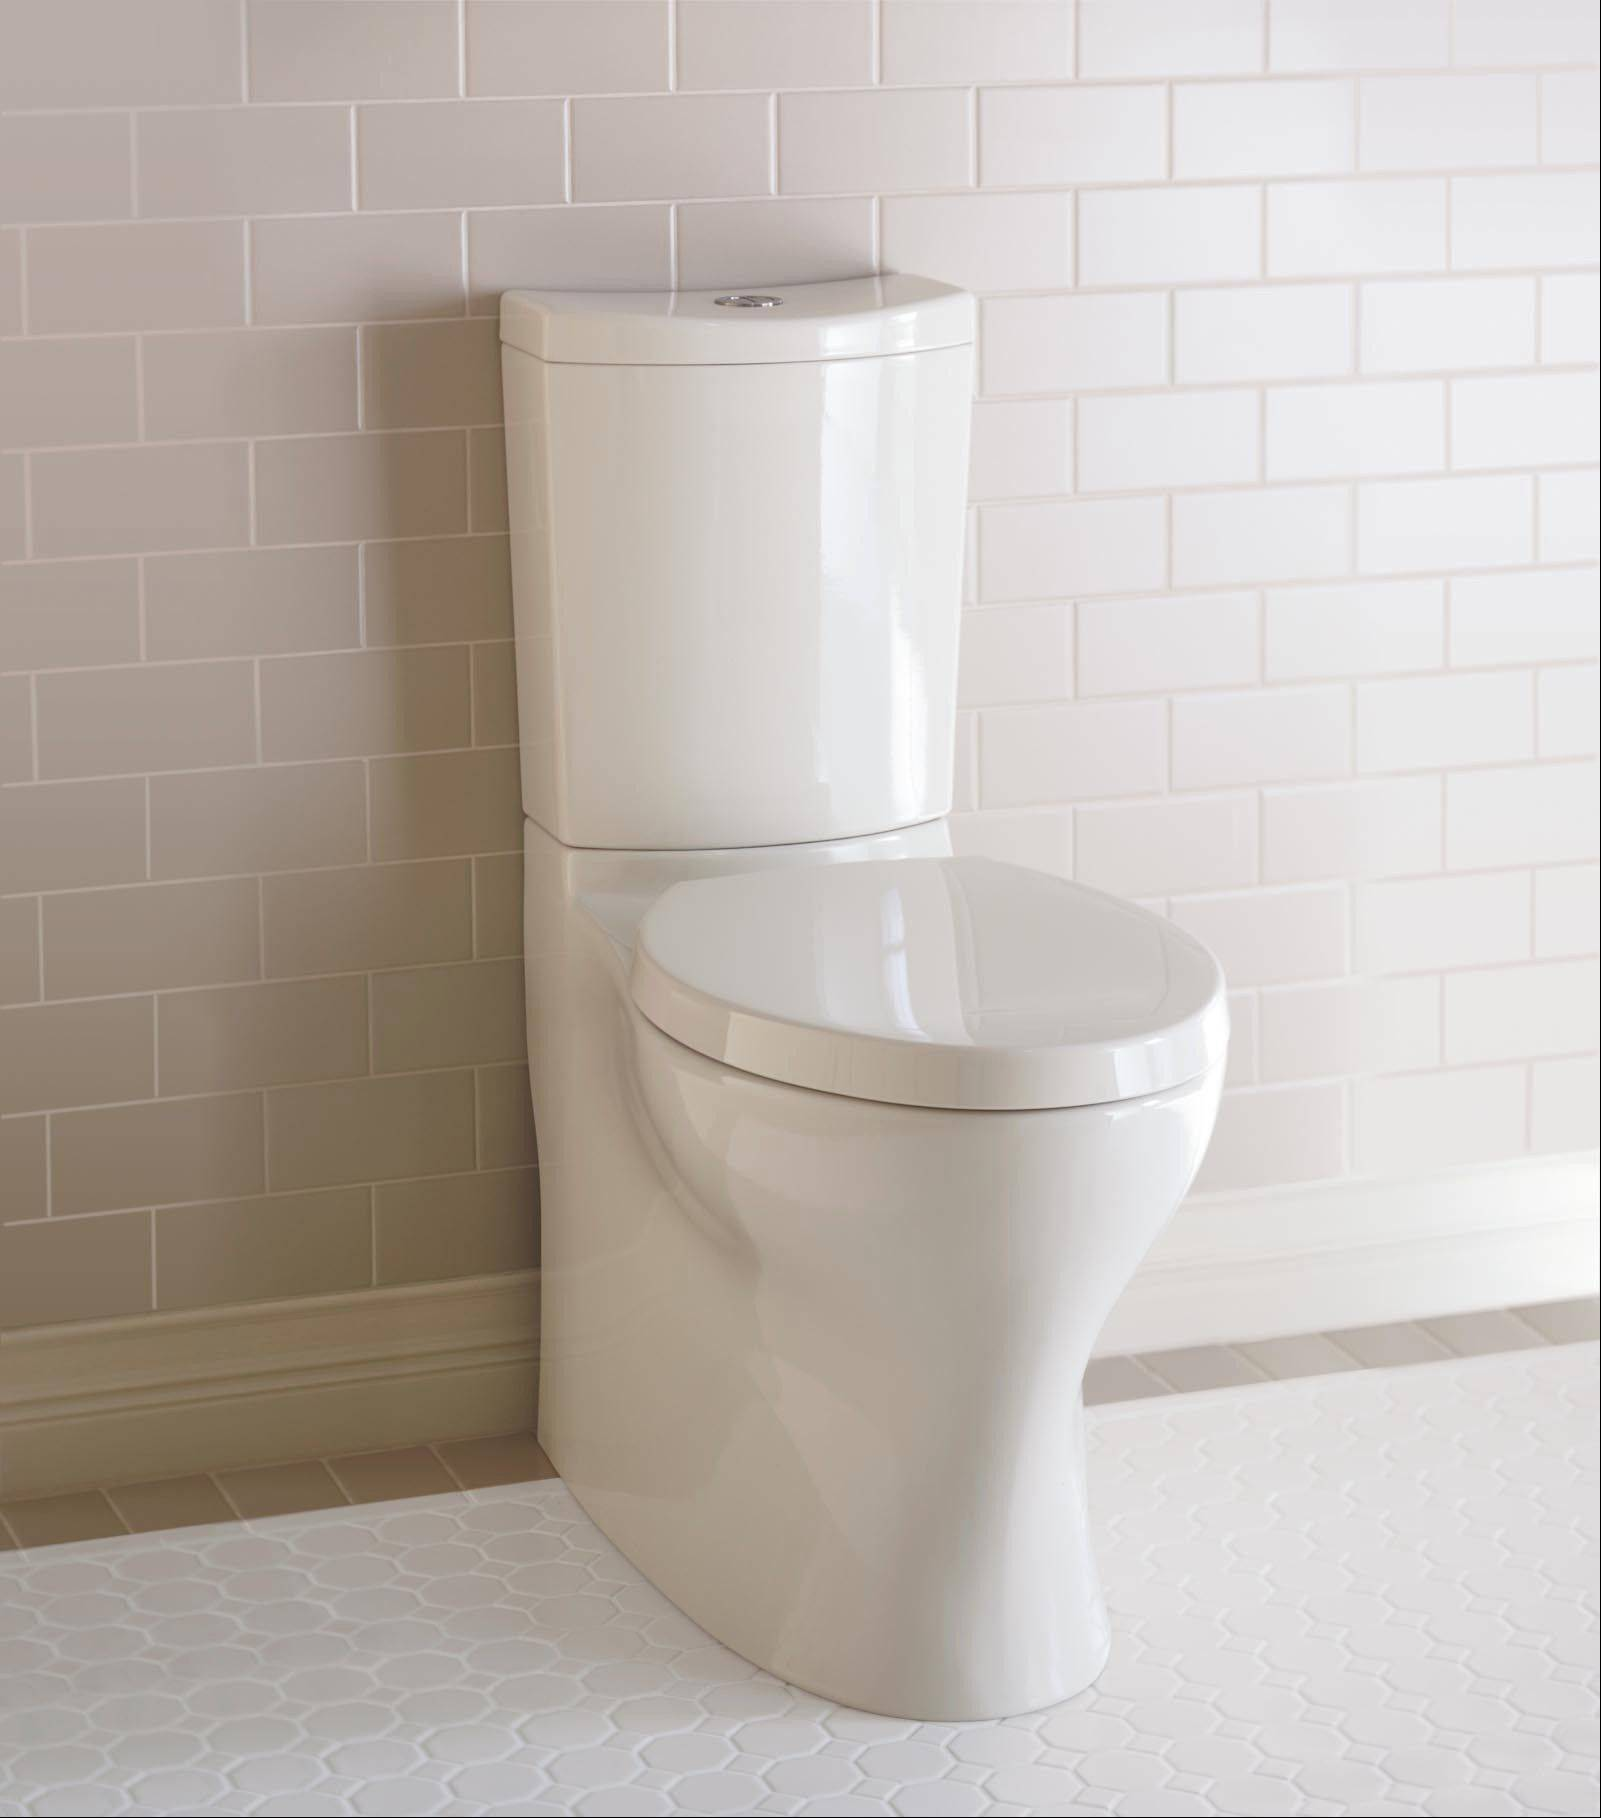 Your existing toilet can act as a template to help narrow down your choices when purchasing a new one.